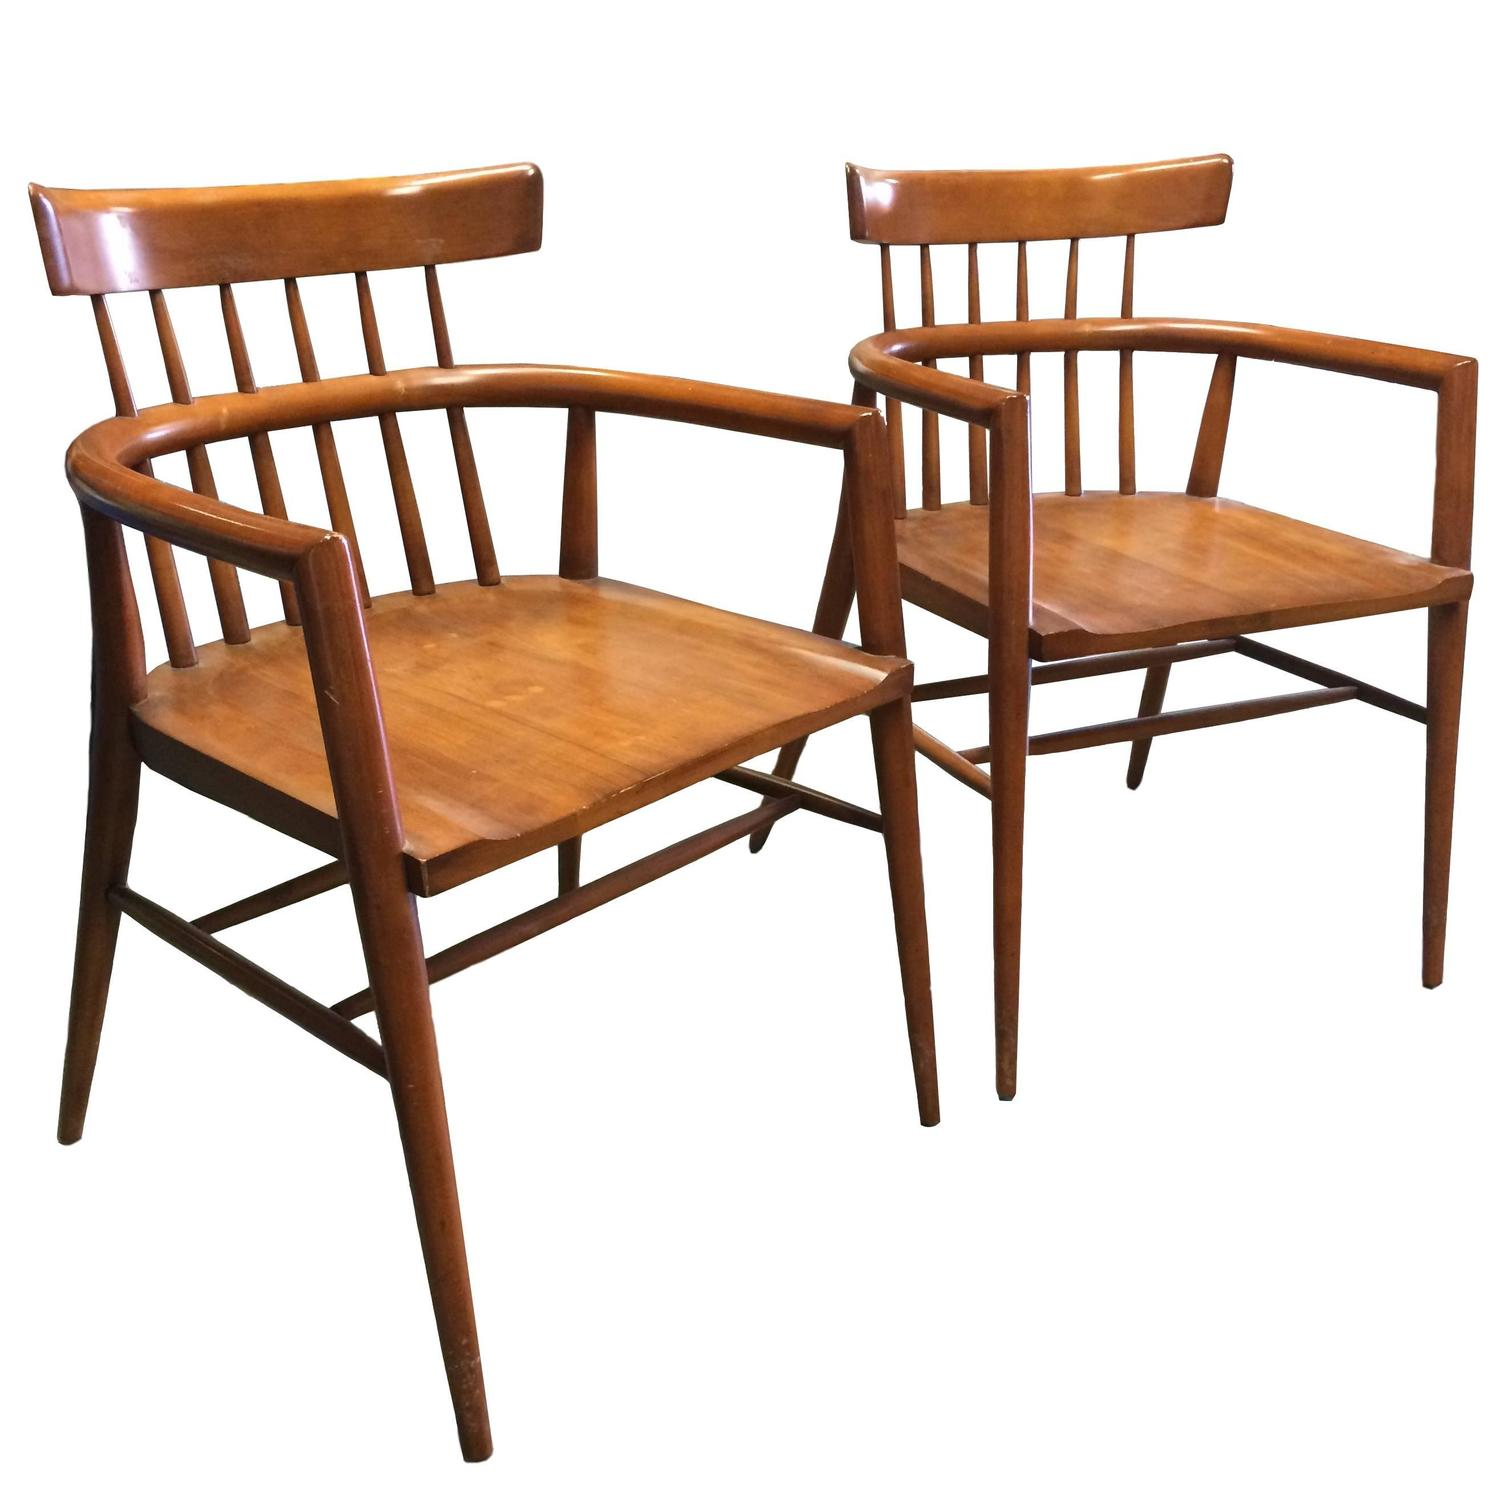 Paul McCobb Maple Armchairs for Winchendon For Sale at 1stdibs